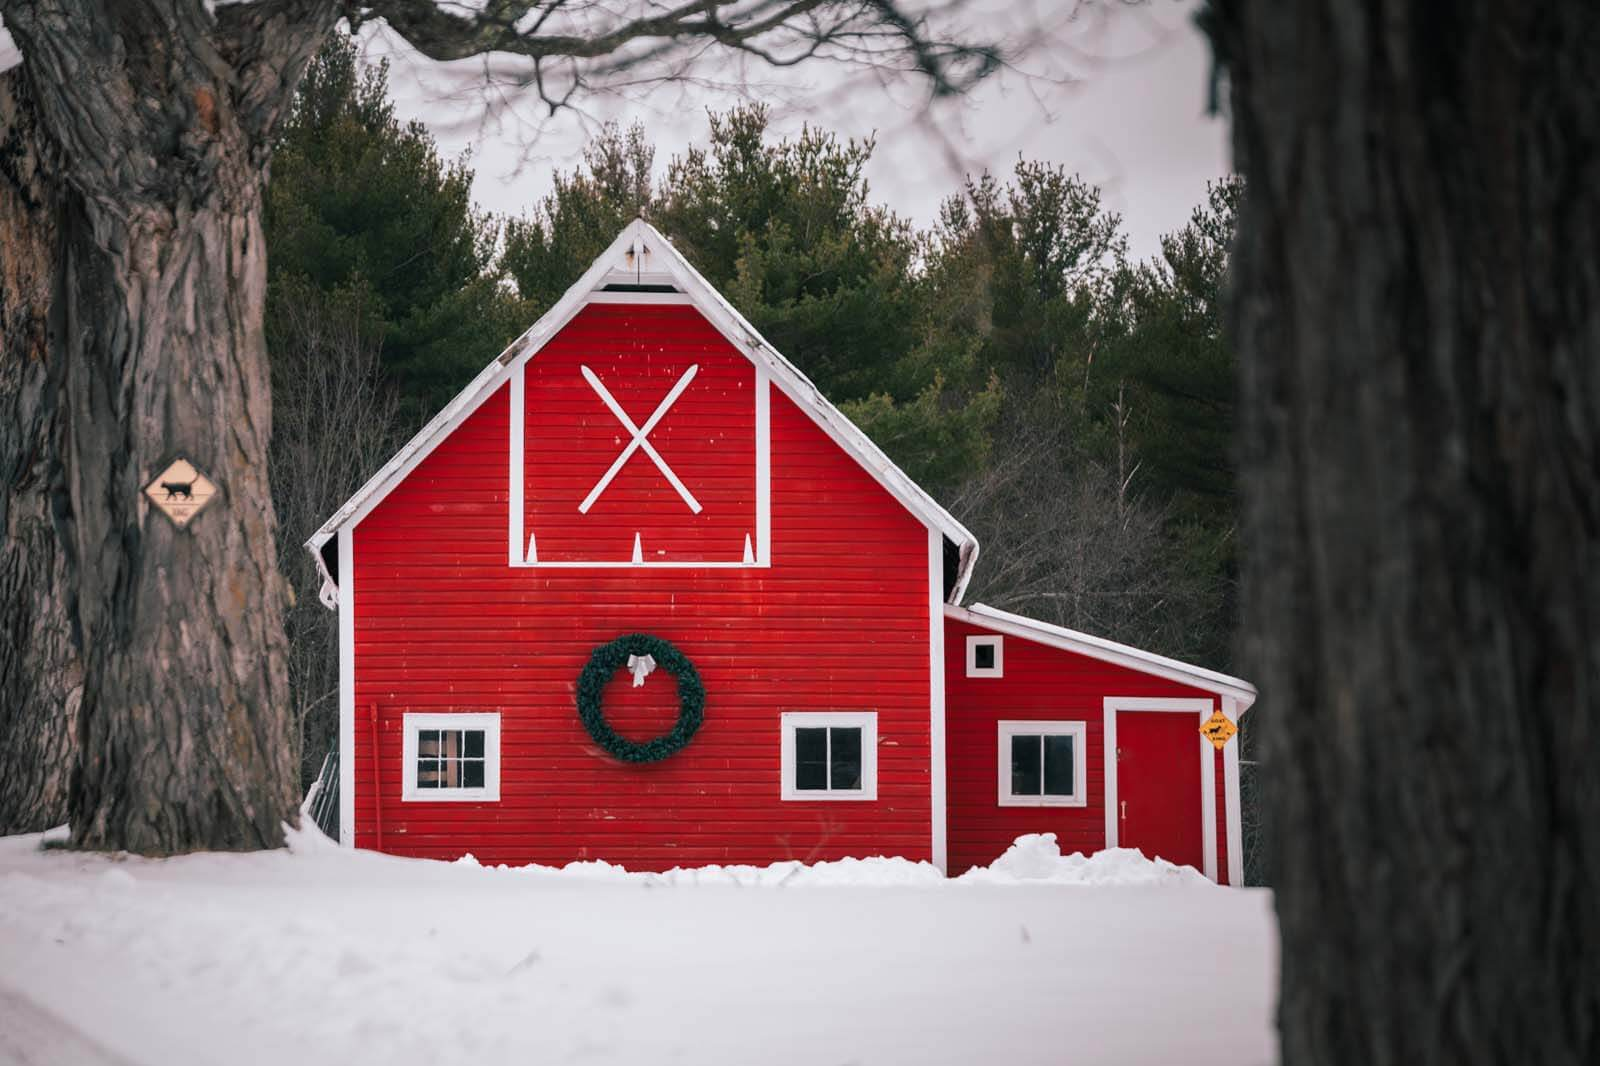 pretty red barn in the snow scene in Jay New York in the Adirondacks